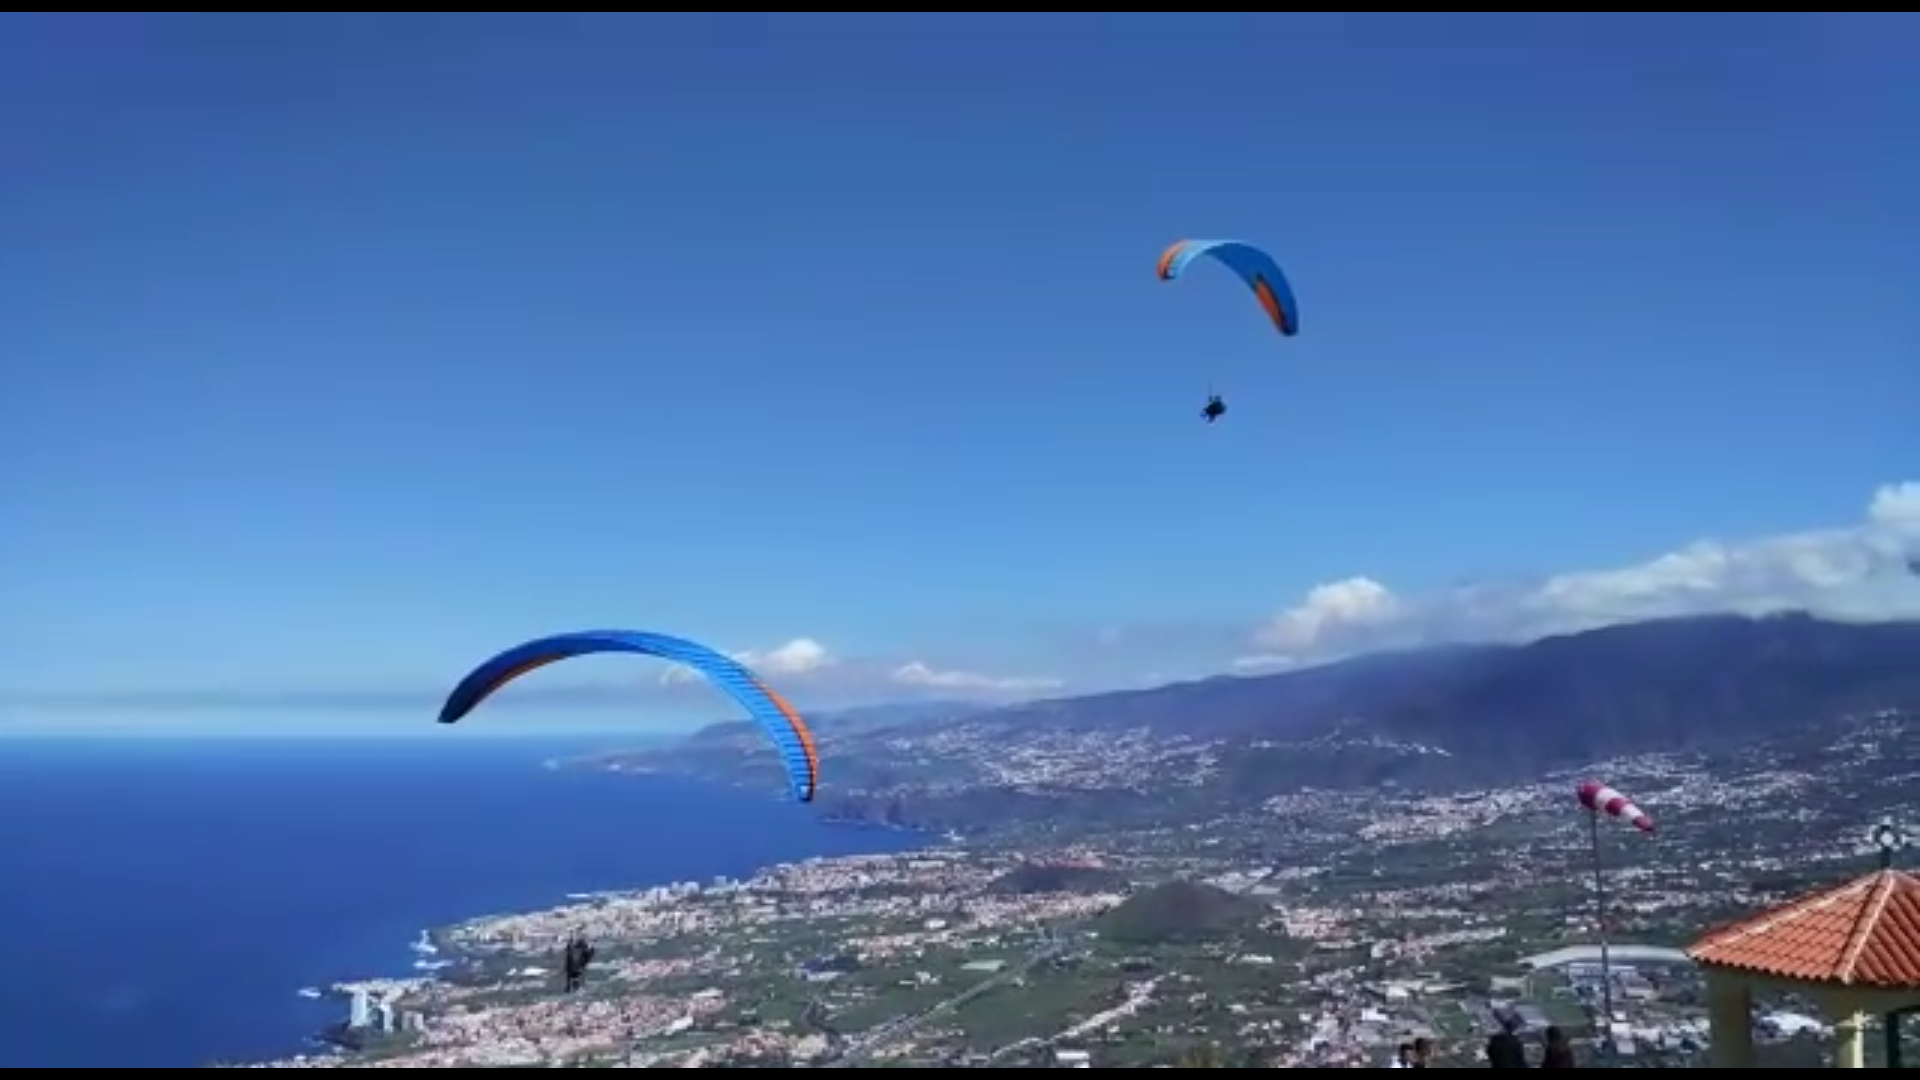 PARAGLIDING TENERIFE - FLY PARAGLIDING TENERIFE - ADVENTURE PLAN TENERIFE PARAGLIDING - ADVENTURE TENERIFE PARAGLIDING _ PARAGLIDING LESSONS TENERIFE - PARAGLIDING ADEJE - PARAGLIDING TEIDE - PARAPENDIO TENERIFE - PARAPENDIO TANDEM TENERIFE-- PARAGLIDING SEA CLOUDS TENERIFE - ADVENTURE TENERIFE - ACTIVITIES TENERIFE - ADVENTURE ACTIVITIES TENERIFE, fly paragliding tenerife